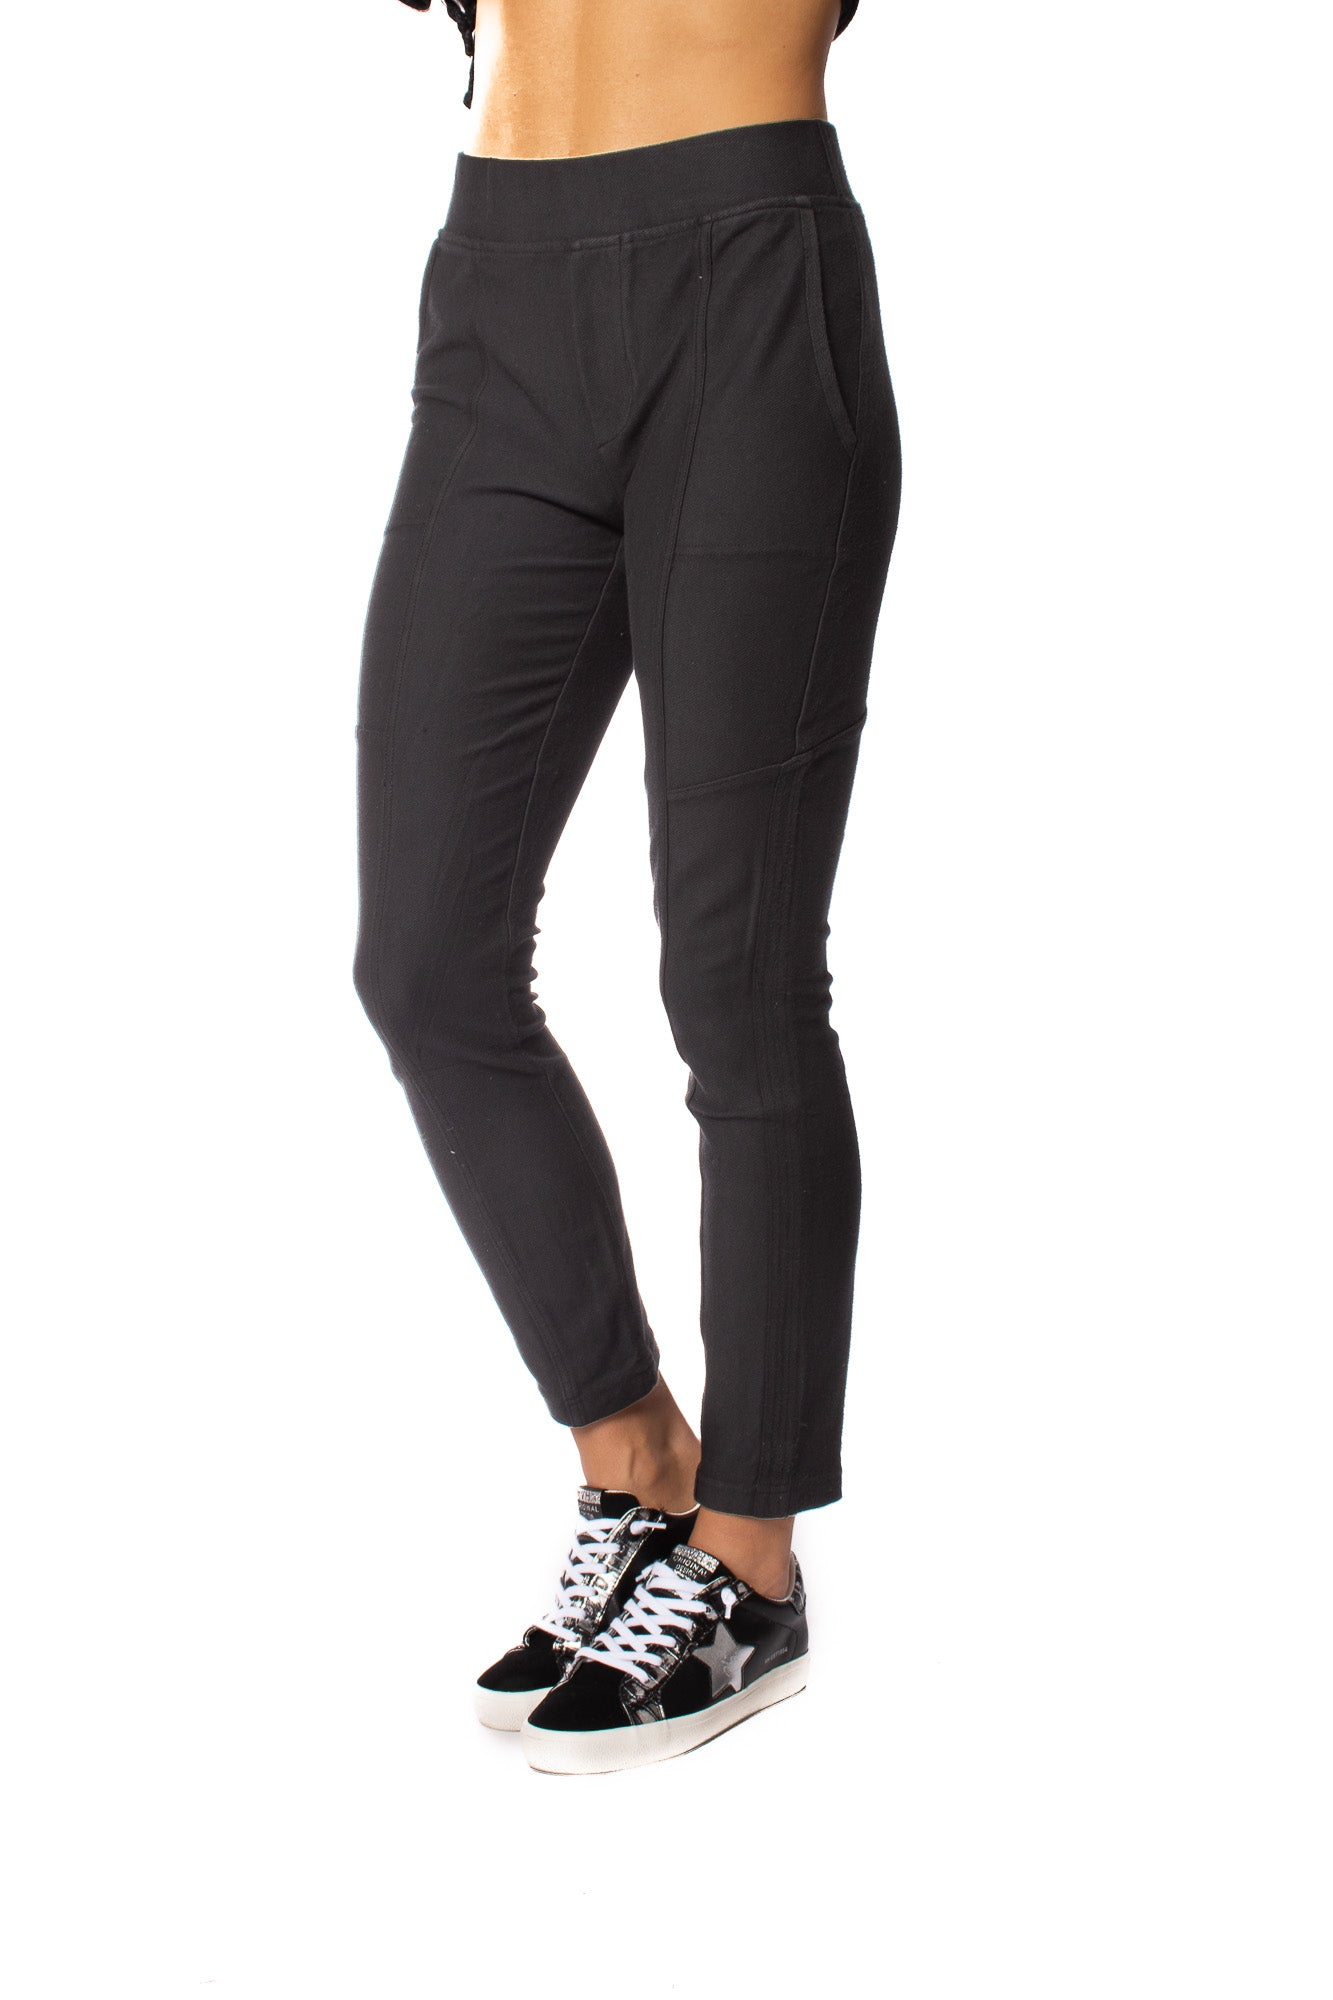 XCVI - Sullivan Pants (22456, Black)